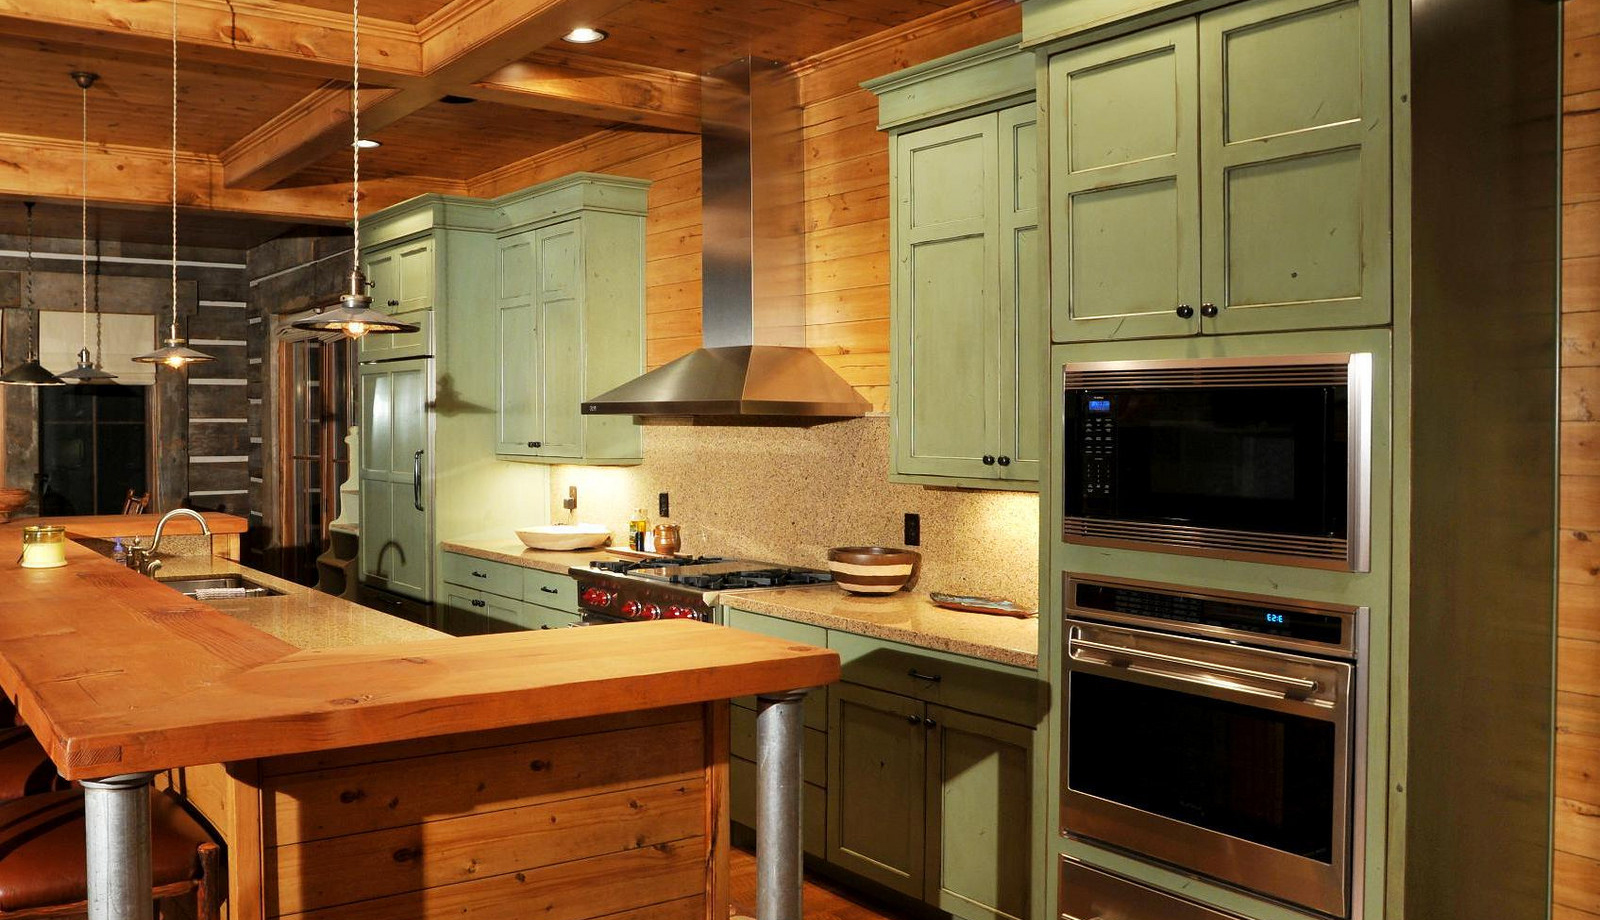 Strange Quality Custom Cabinets In Utah By Premier Cabinets Home Interior And Landscaping Oversignezvosmurscom